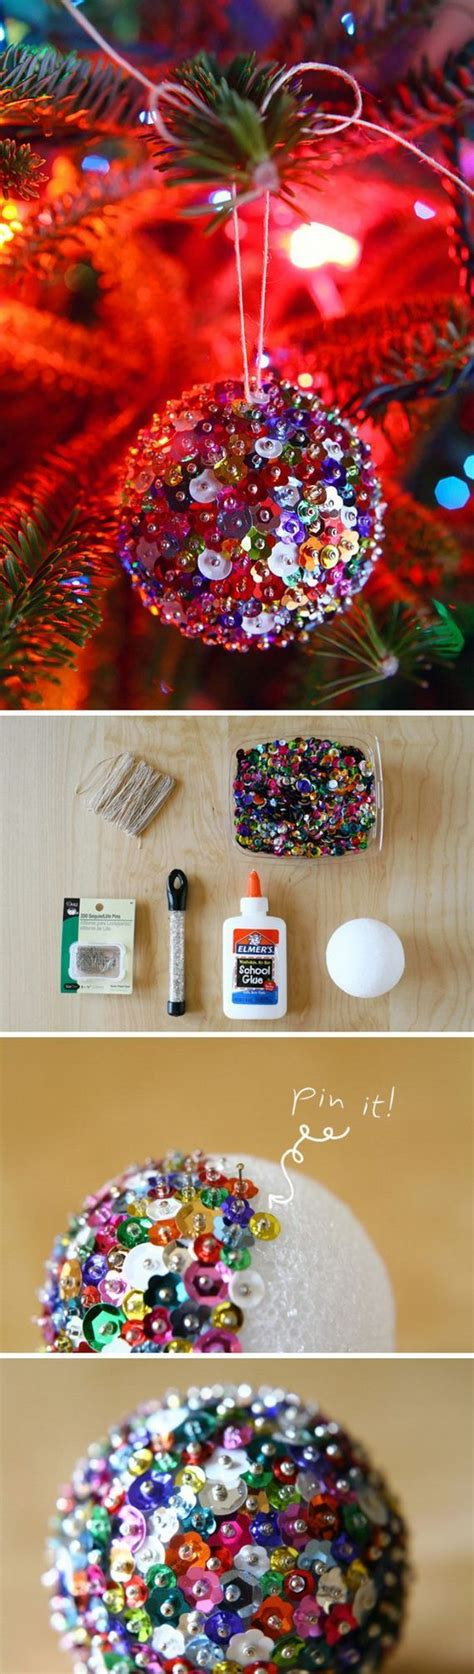 Amazing Diy Christmas Ornament Ideas